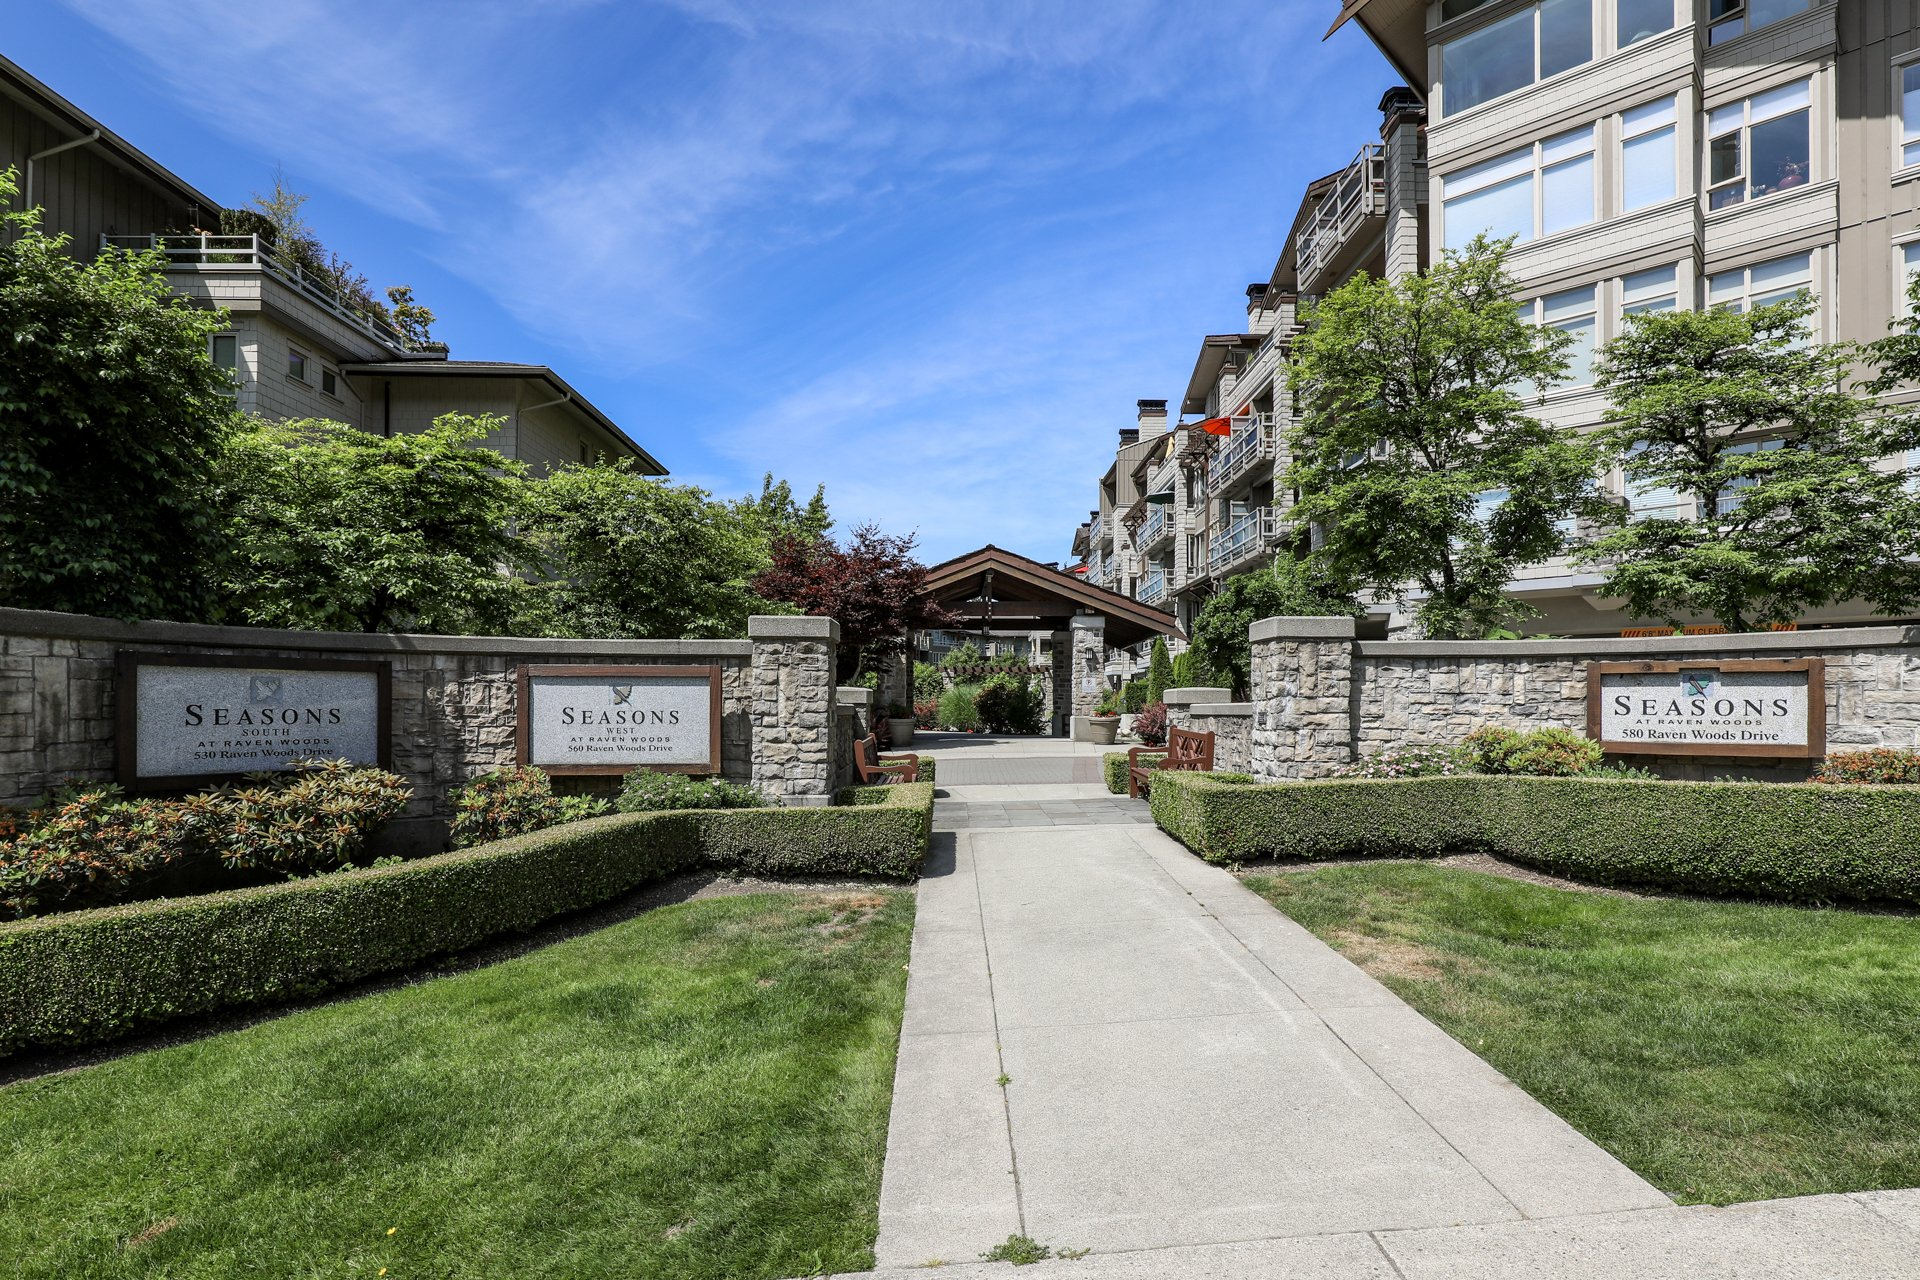 Seasons South - 530 Raven Woods | Condos For Sale + Listing Alerts